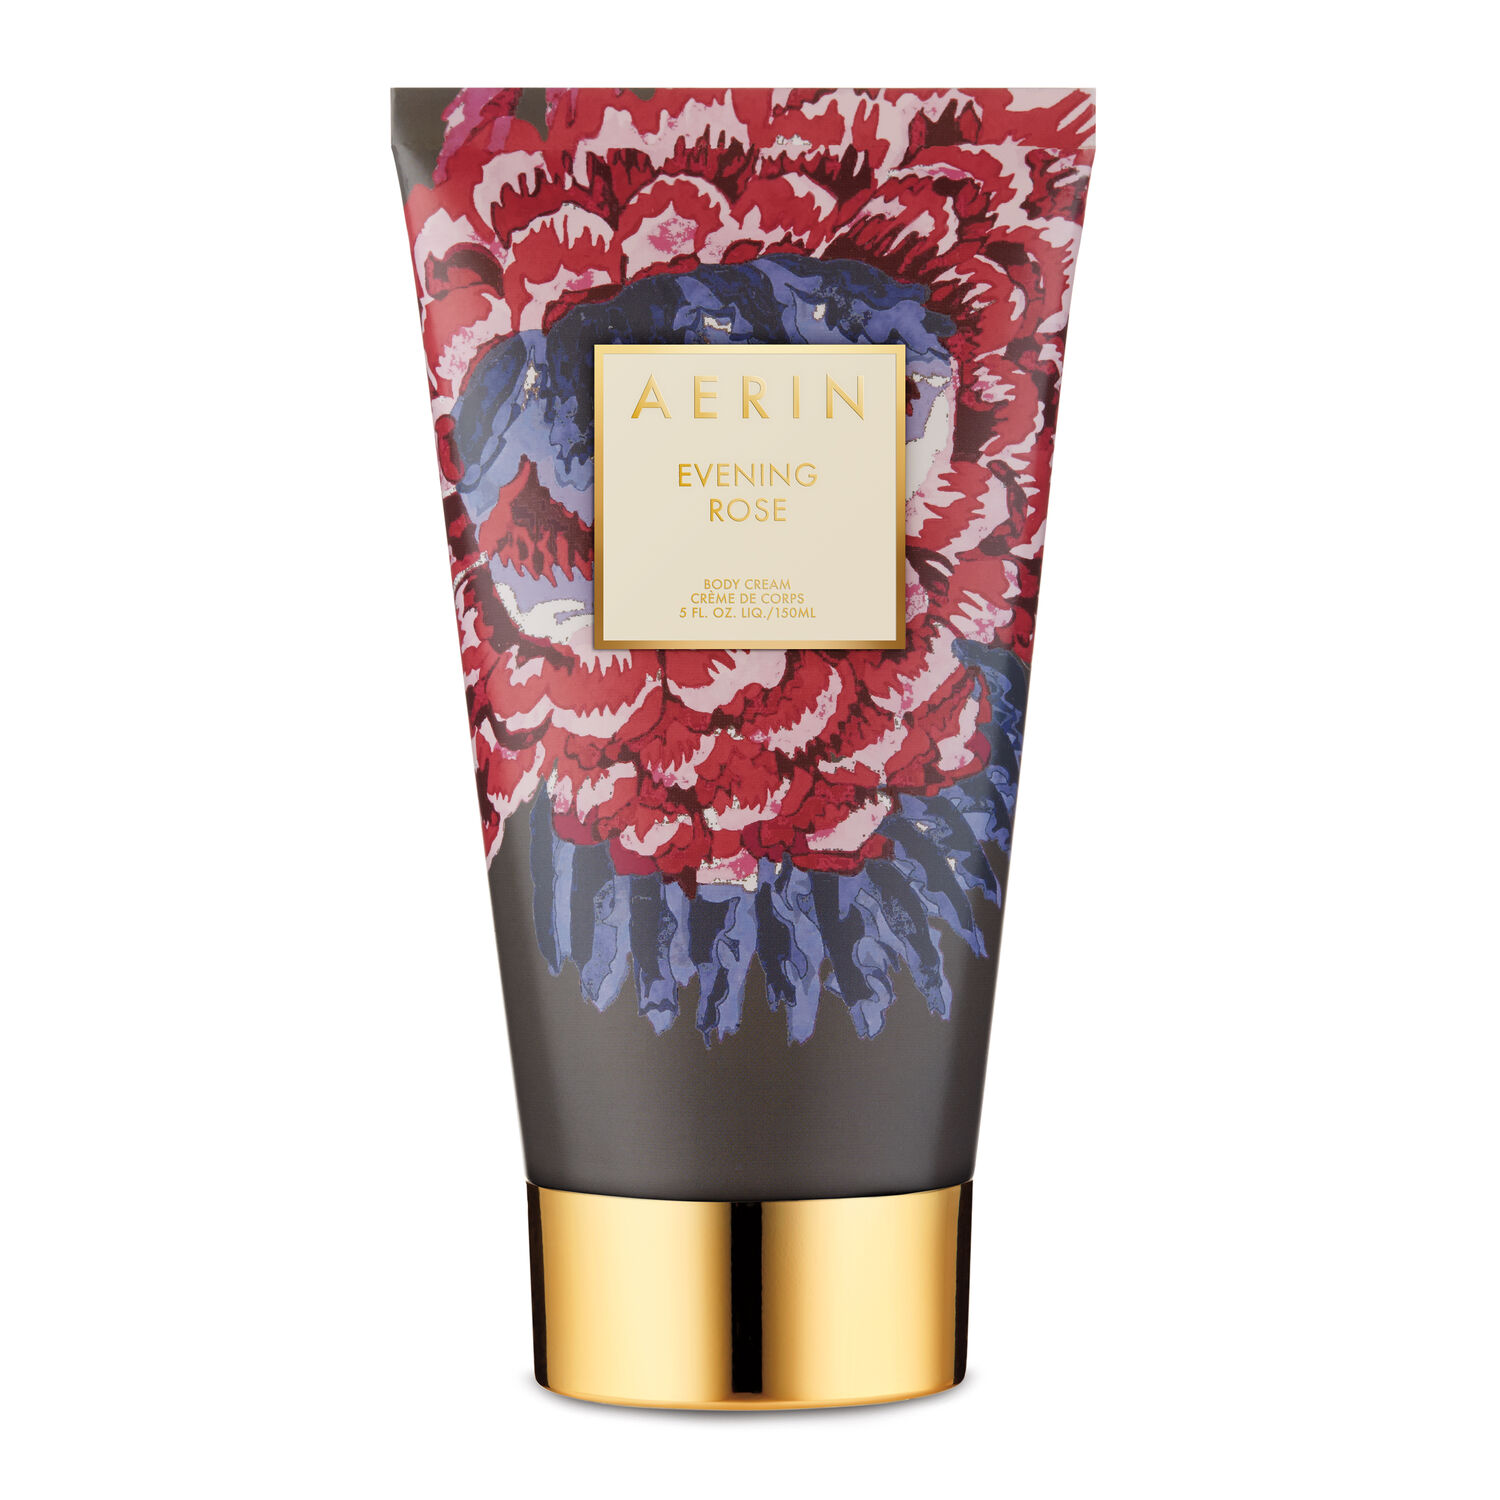 Evening Rose Body Cream